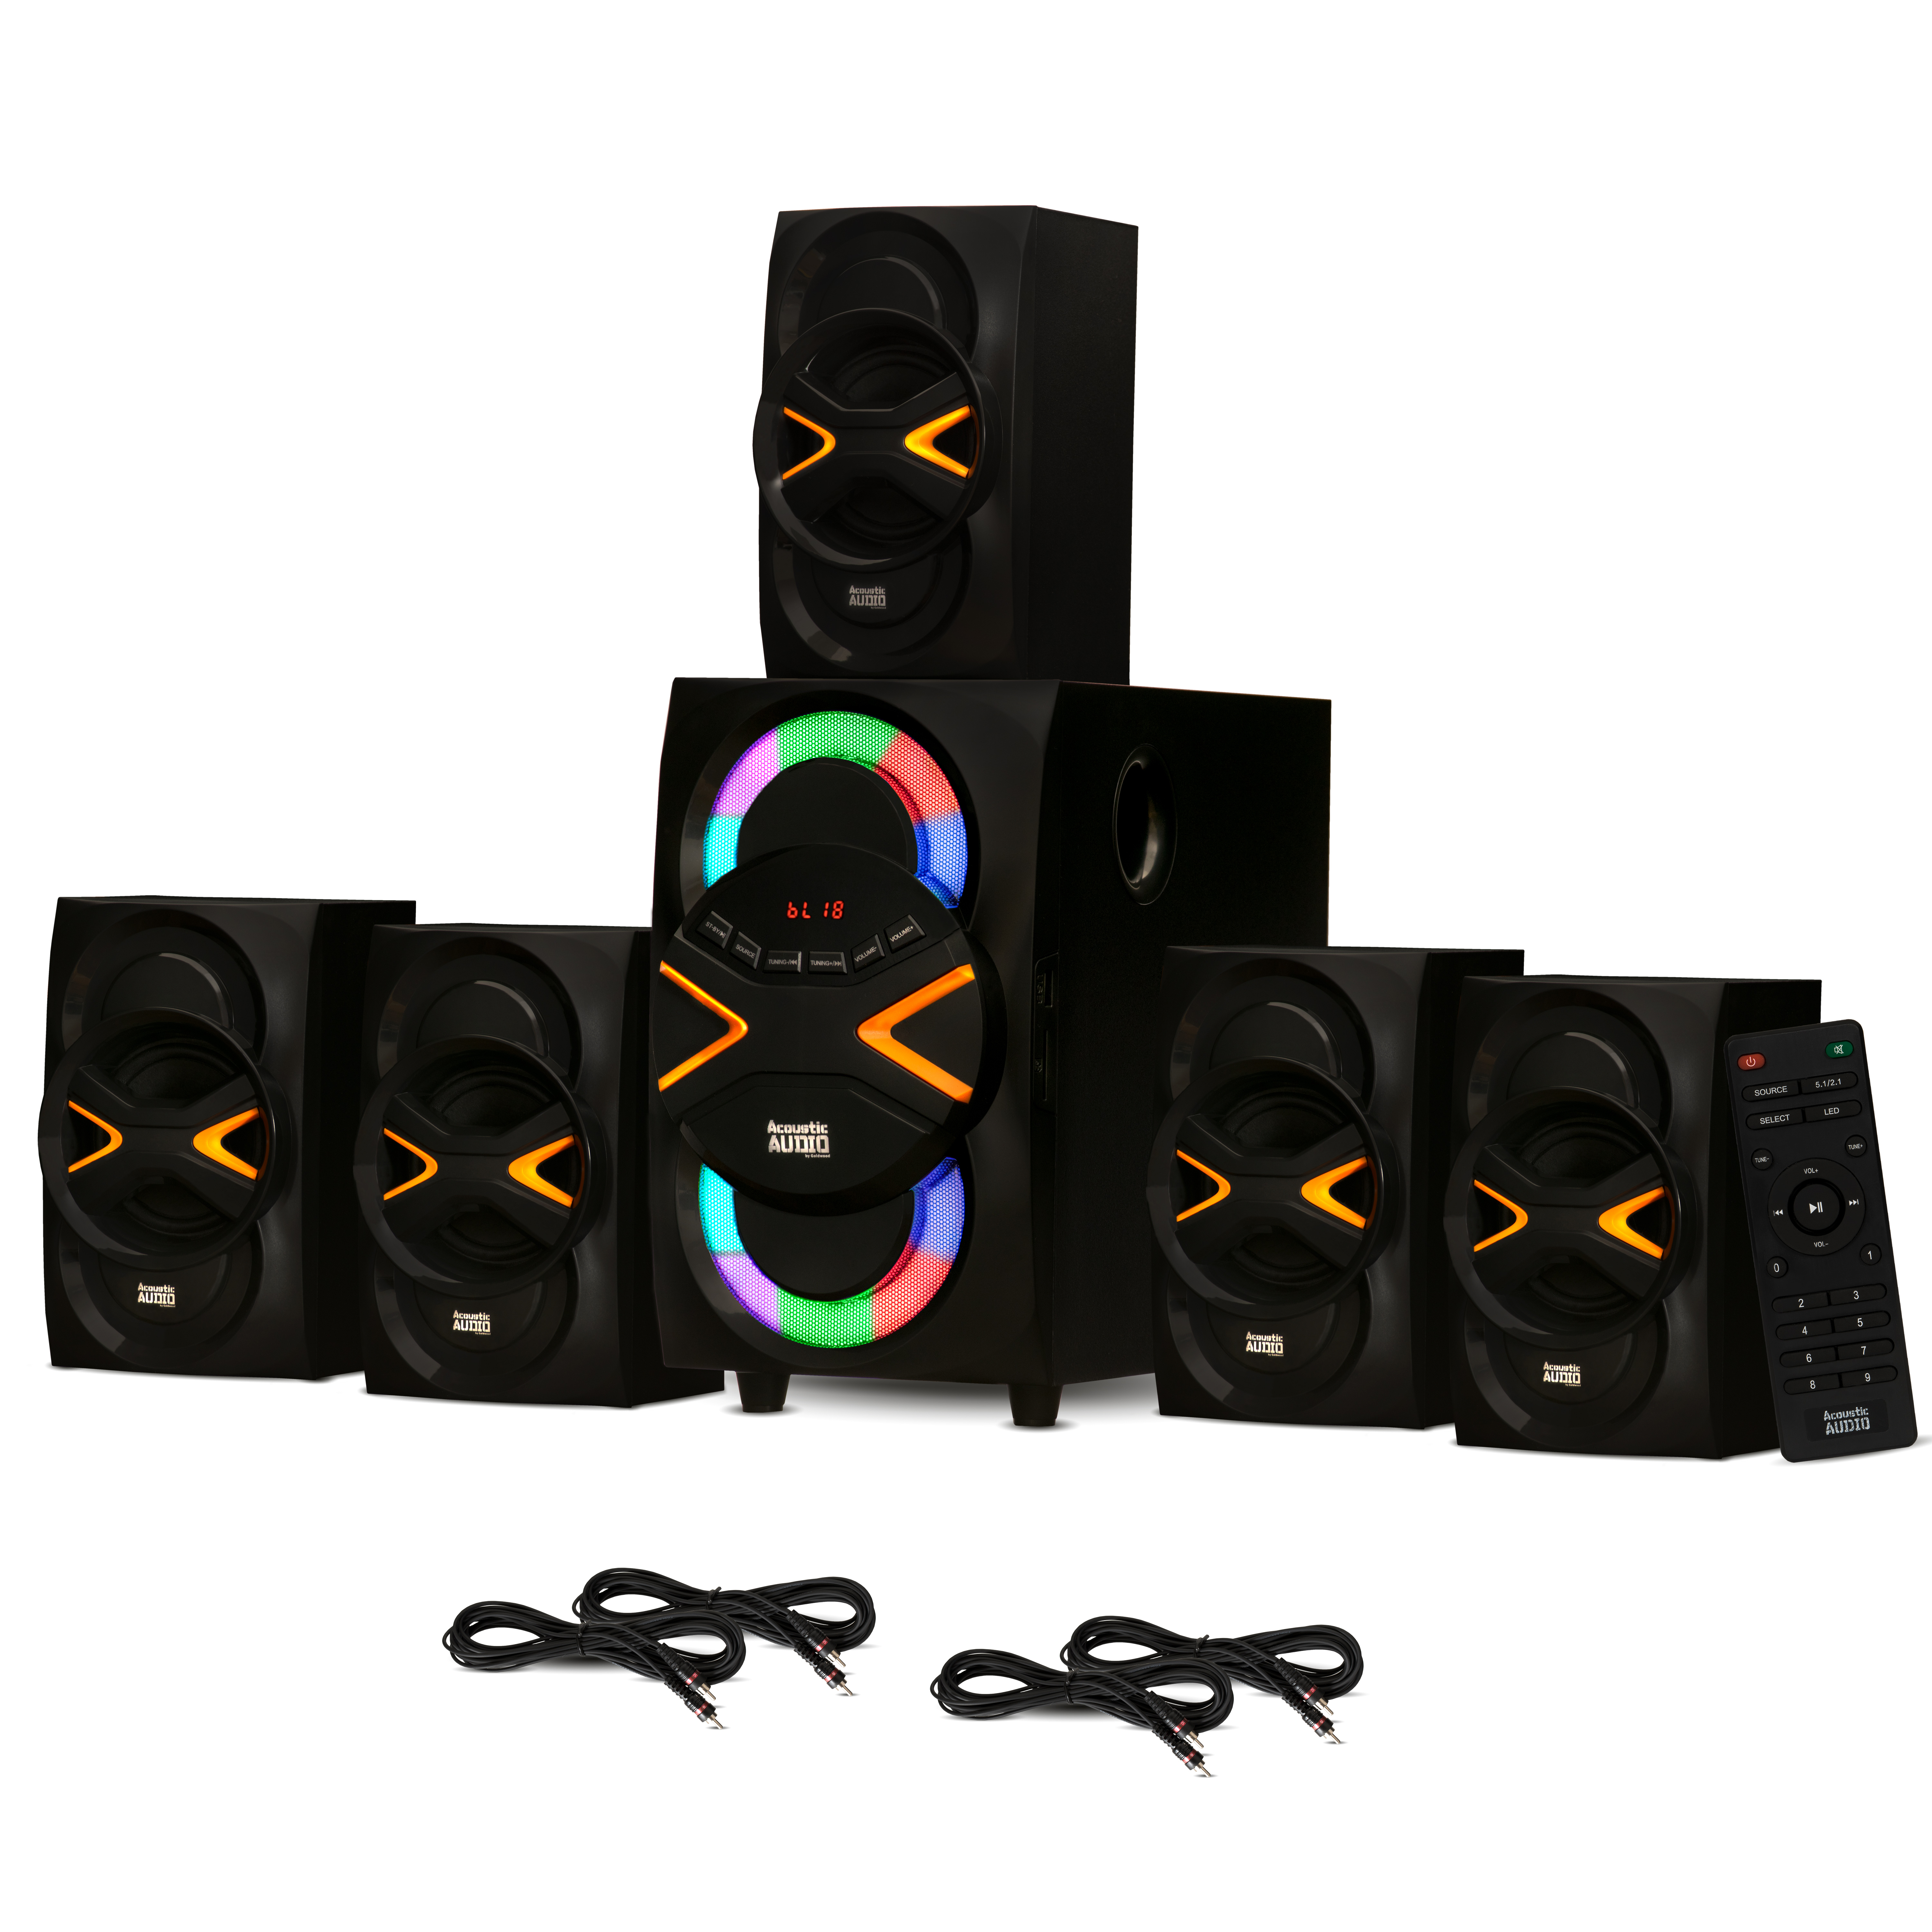 Acoustic Audio AA5210 Home Theater 5.1 Speaker System with Bluetooth LED Lights and 4 Extension Cables